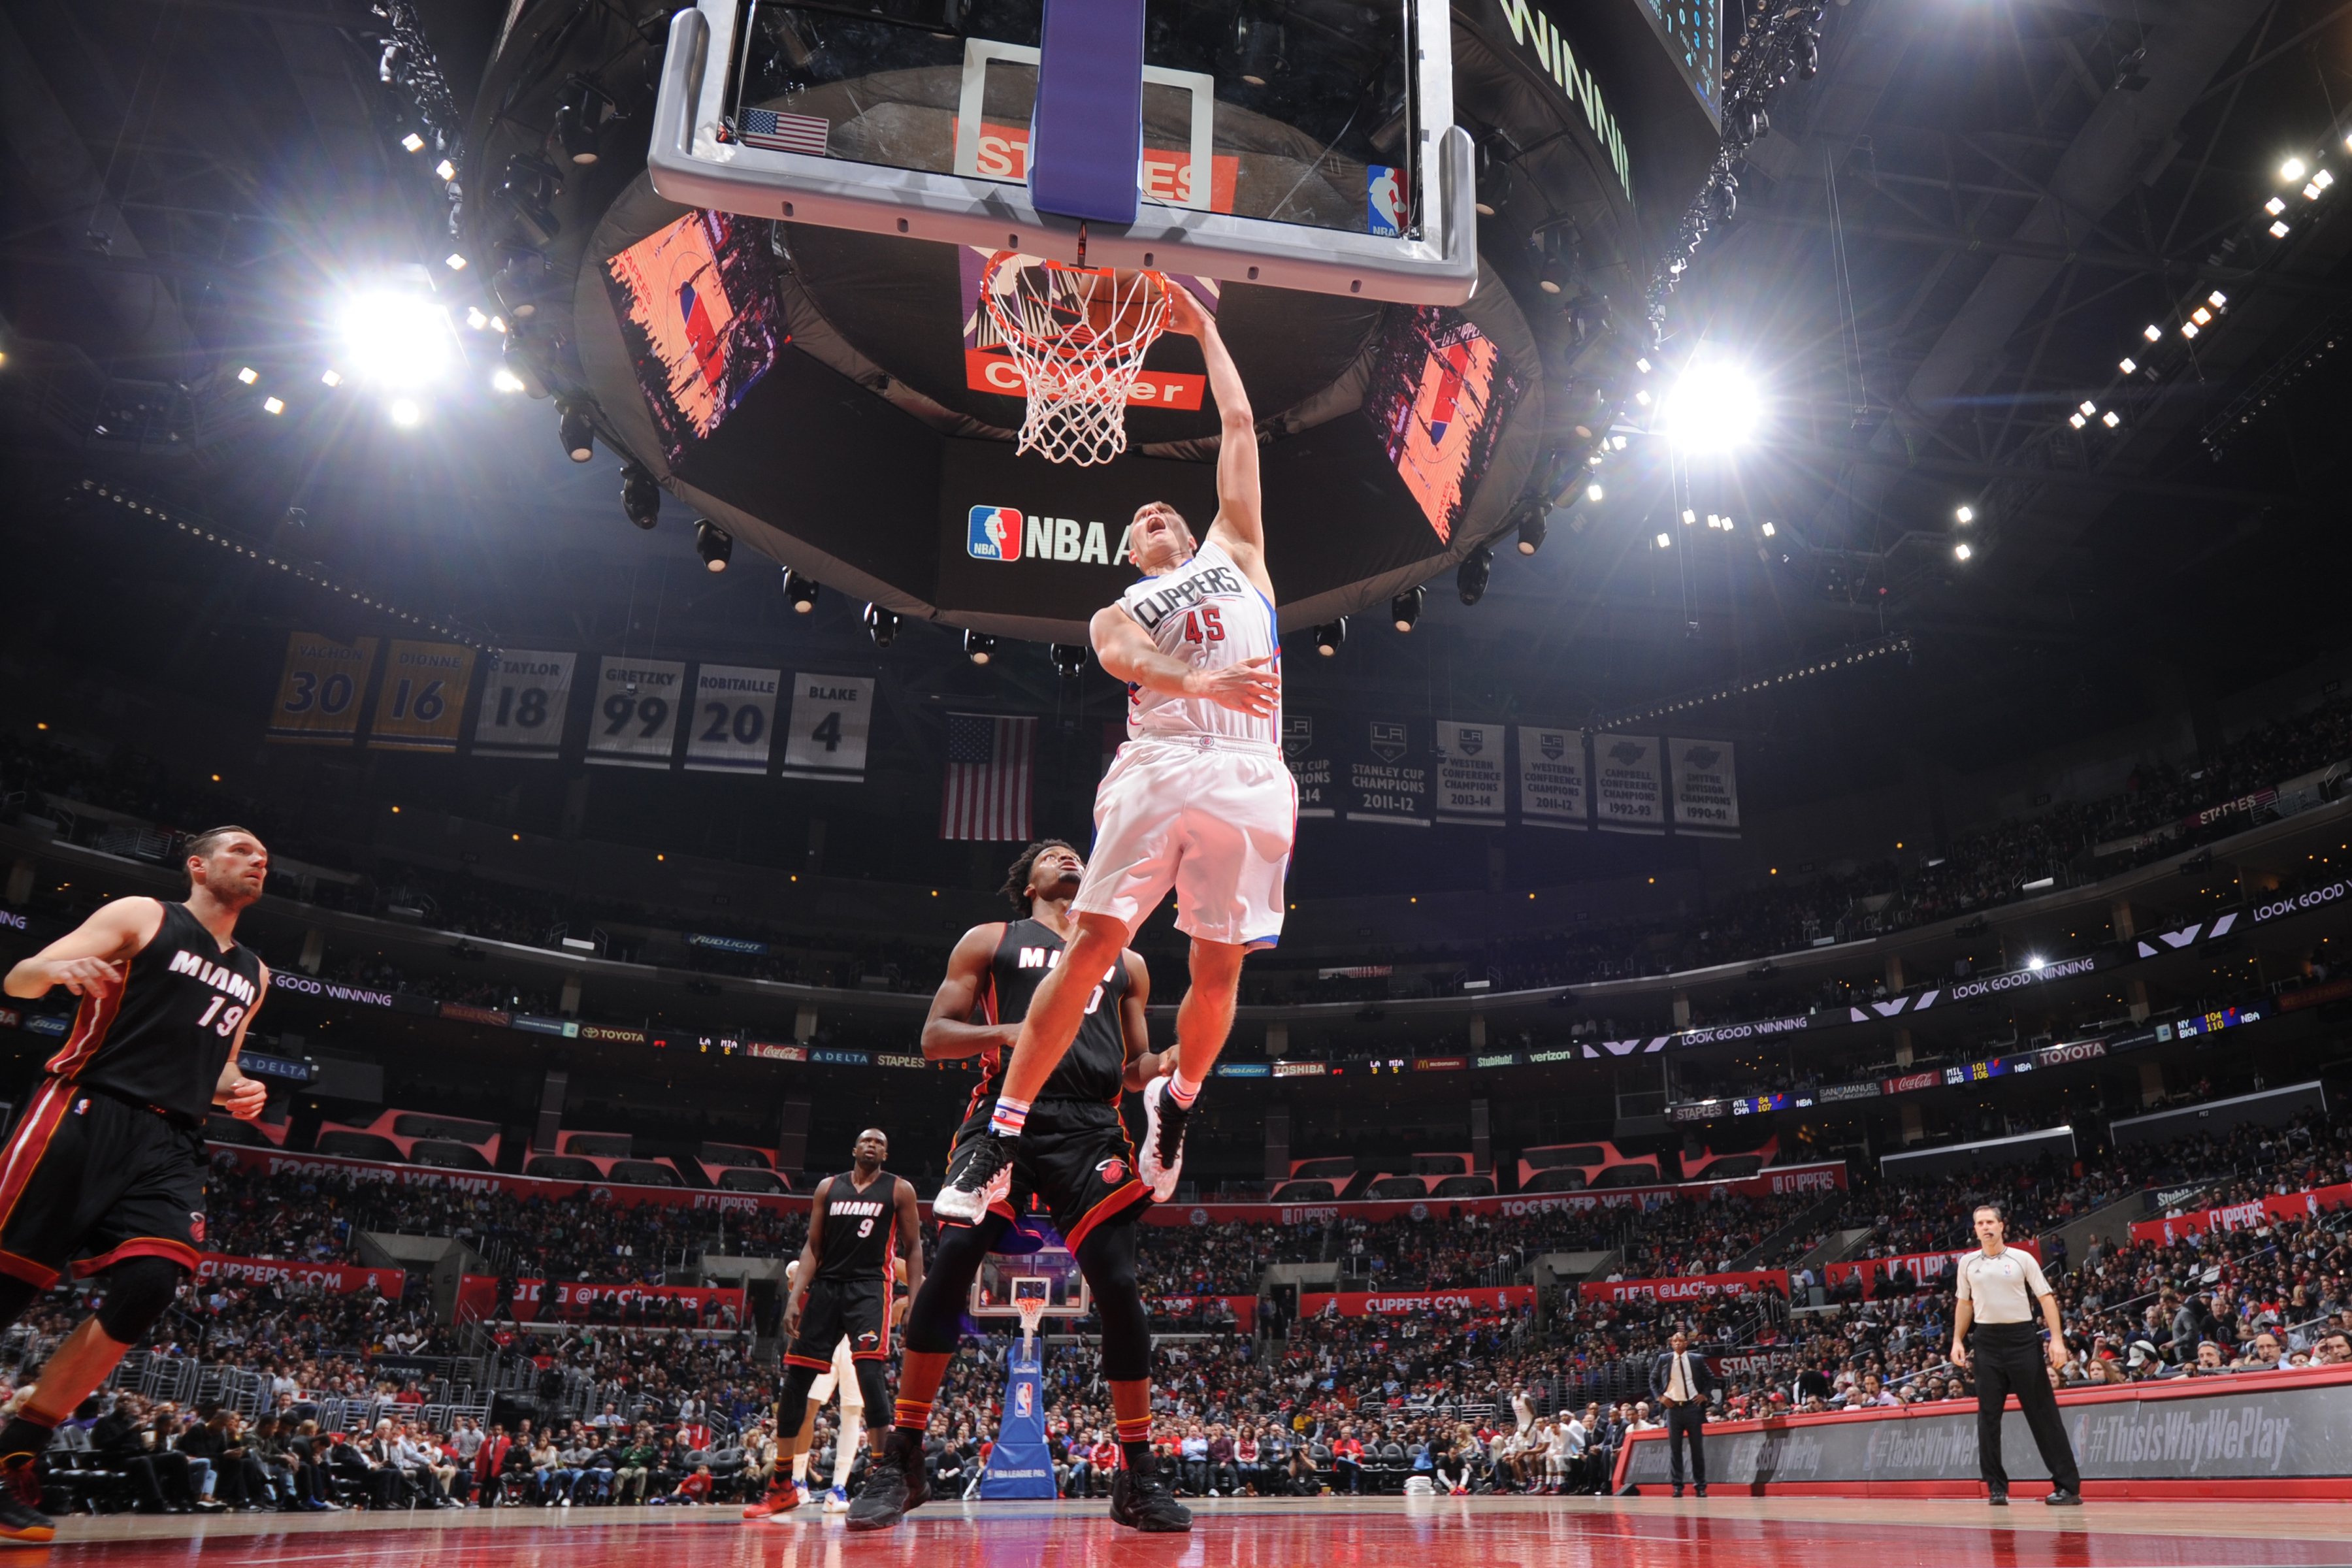 LOS ANGELES, CA - JANUARY 13:  Cole Aldrich #45 of the Los Angeles Clippers dunks during the game against the Miami Heat on January 13, 2016 at STAPLES Center in Los Angeles, California. (Photo by Andrew D. Bernstein/NBAE via Getty Images)